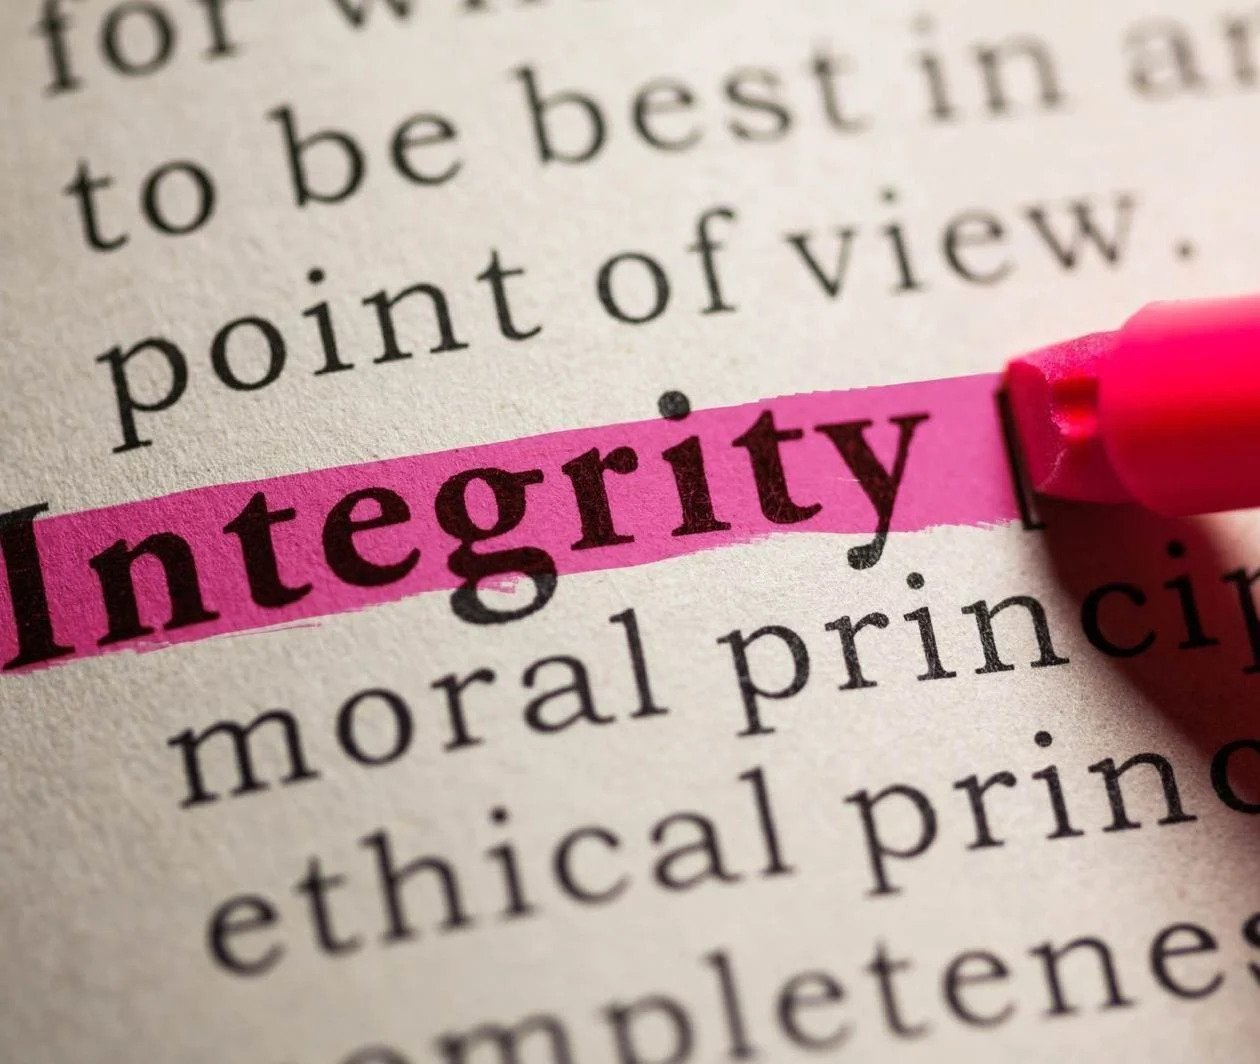 Integrity highlighted word